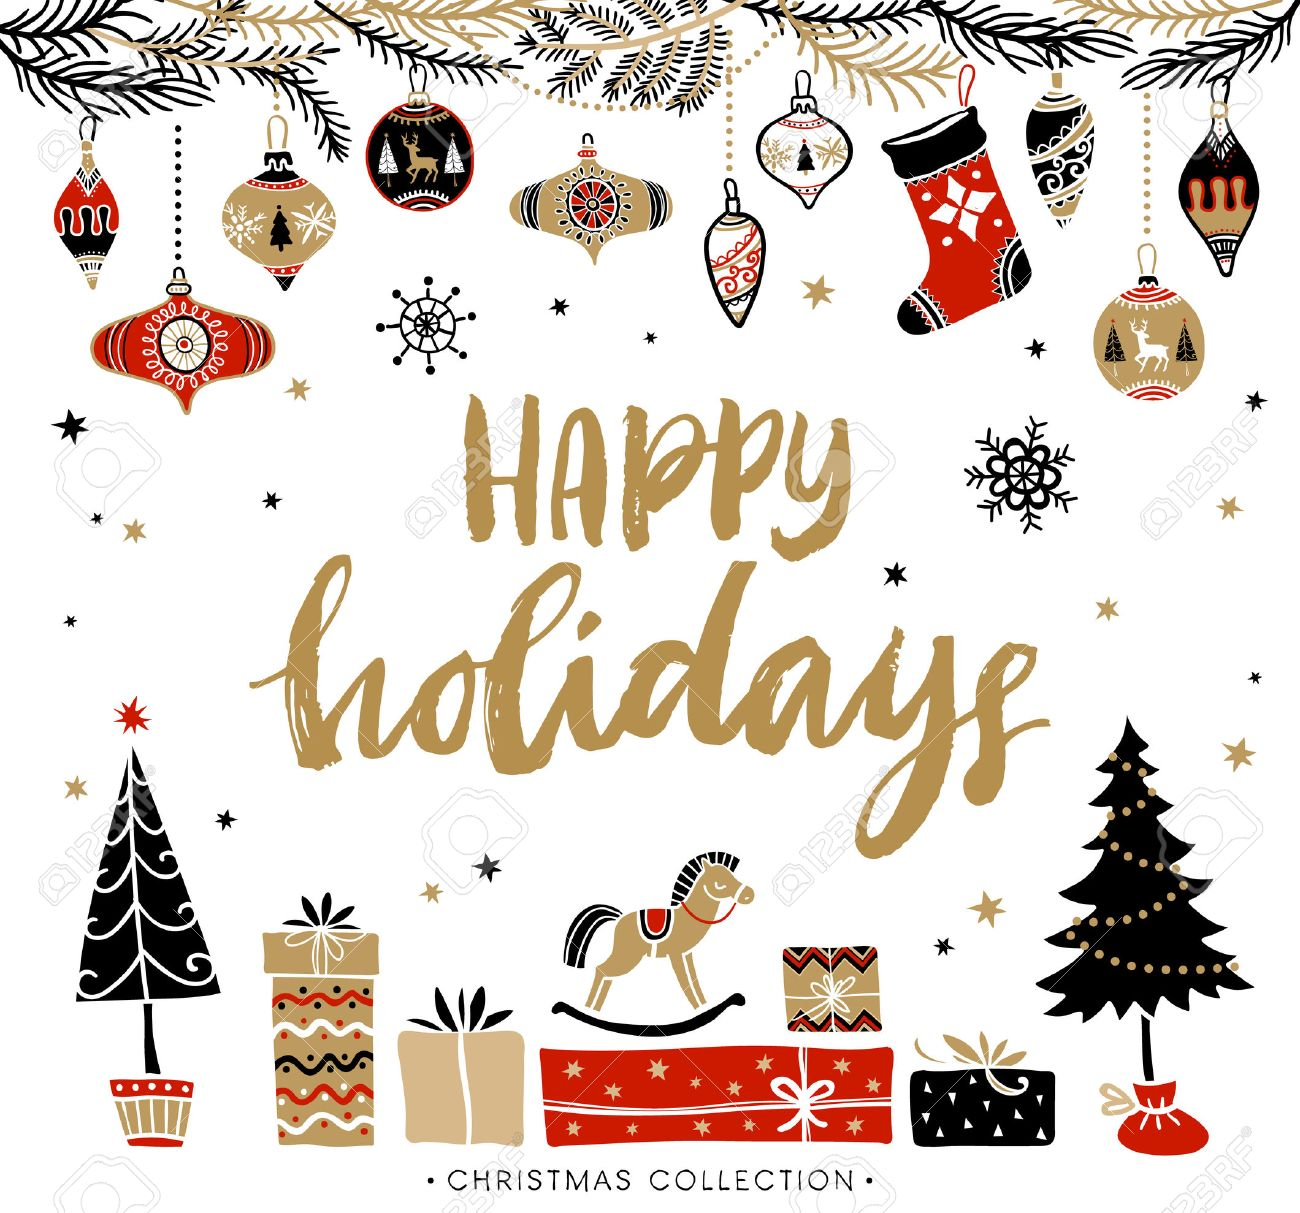 Happy Holidays. Christmas greeting card with calligraphy. Handwritten modern brush lettering. Hand drawn design elements. - 48674071